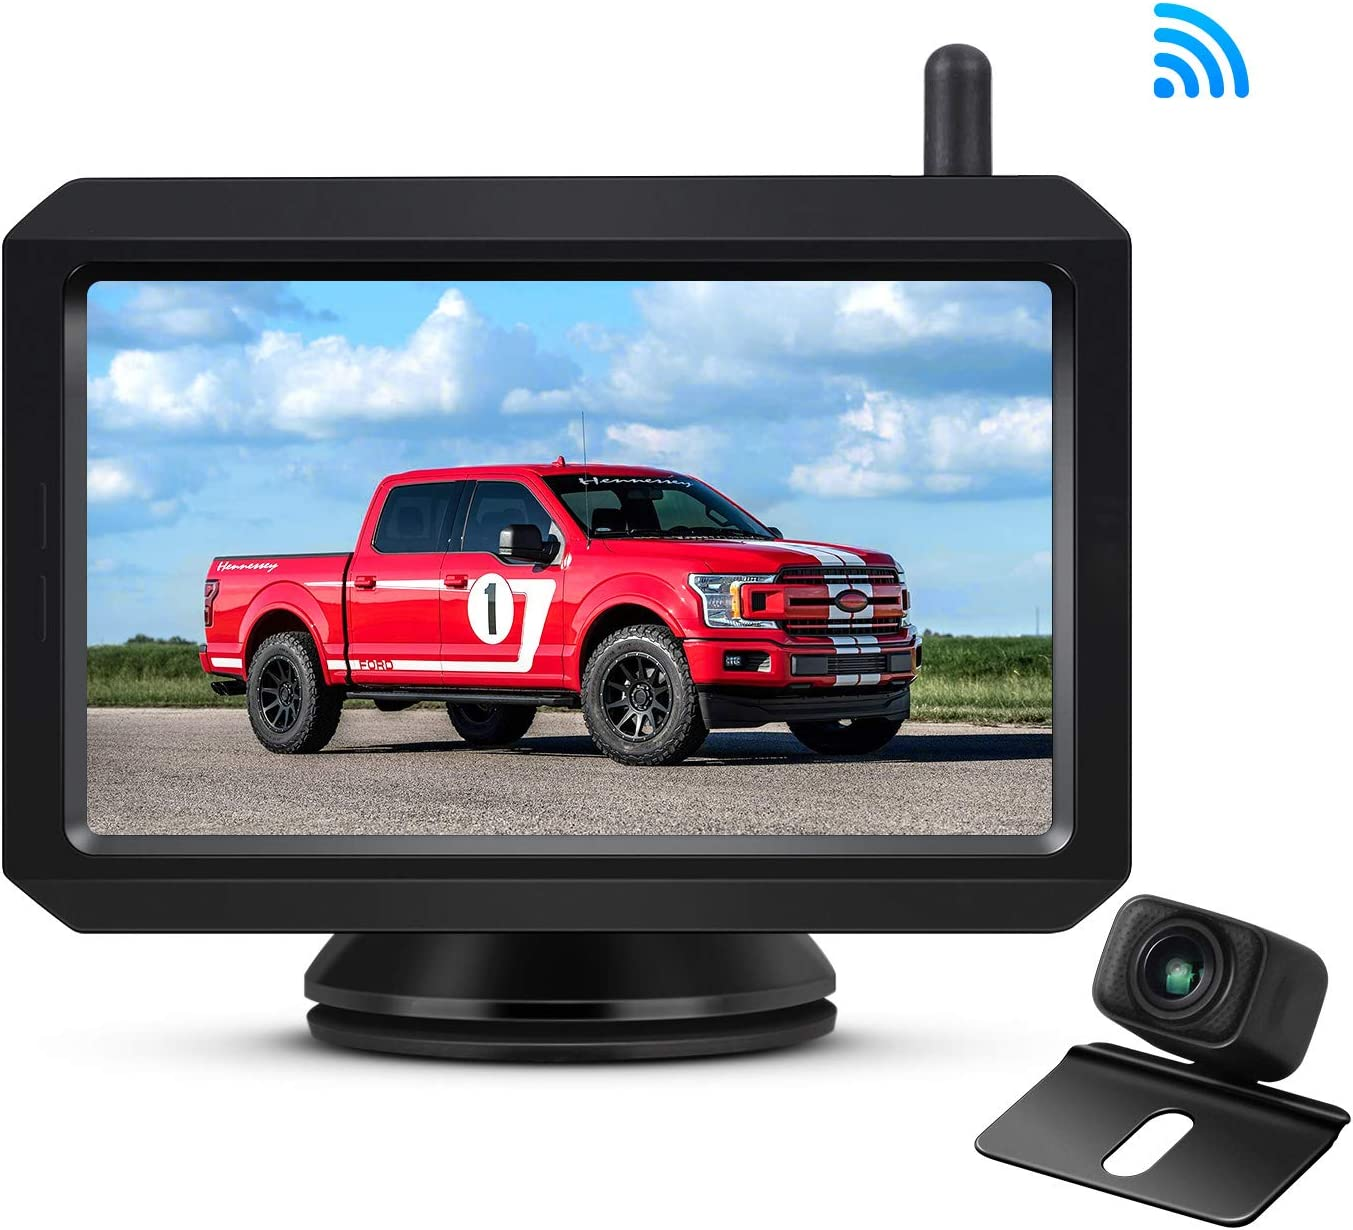 AUTO-VOX W7 Wireless Backup Camera Kit, 5 Inch Monitor with Stable Digital Signal Transmission from Rear View Camera. Suitable for Truck, Van, SUV, Camping Car